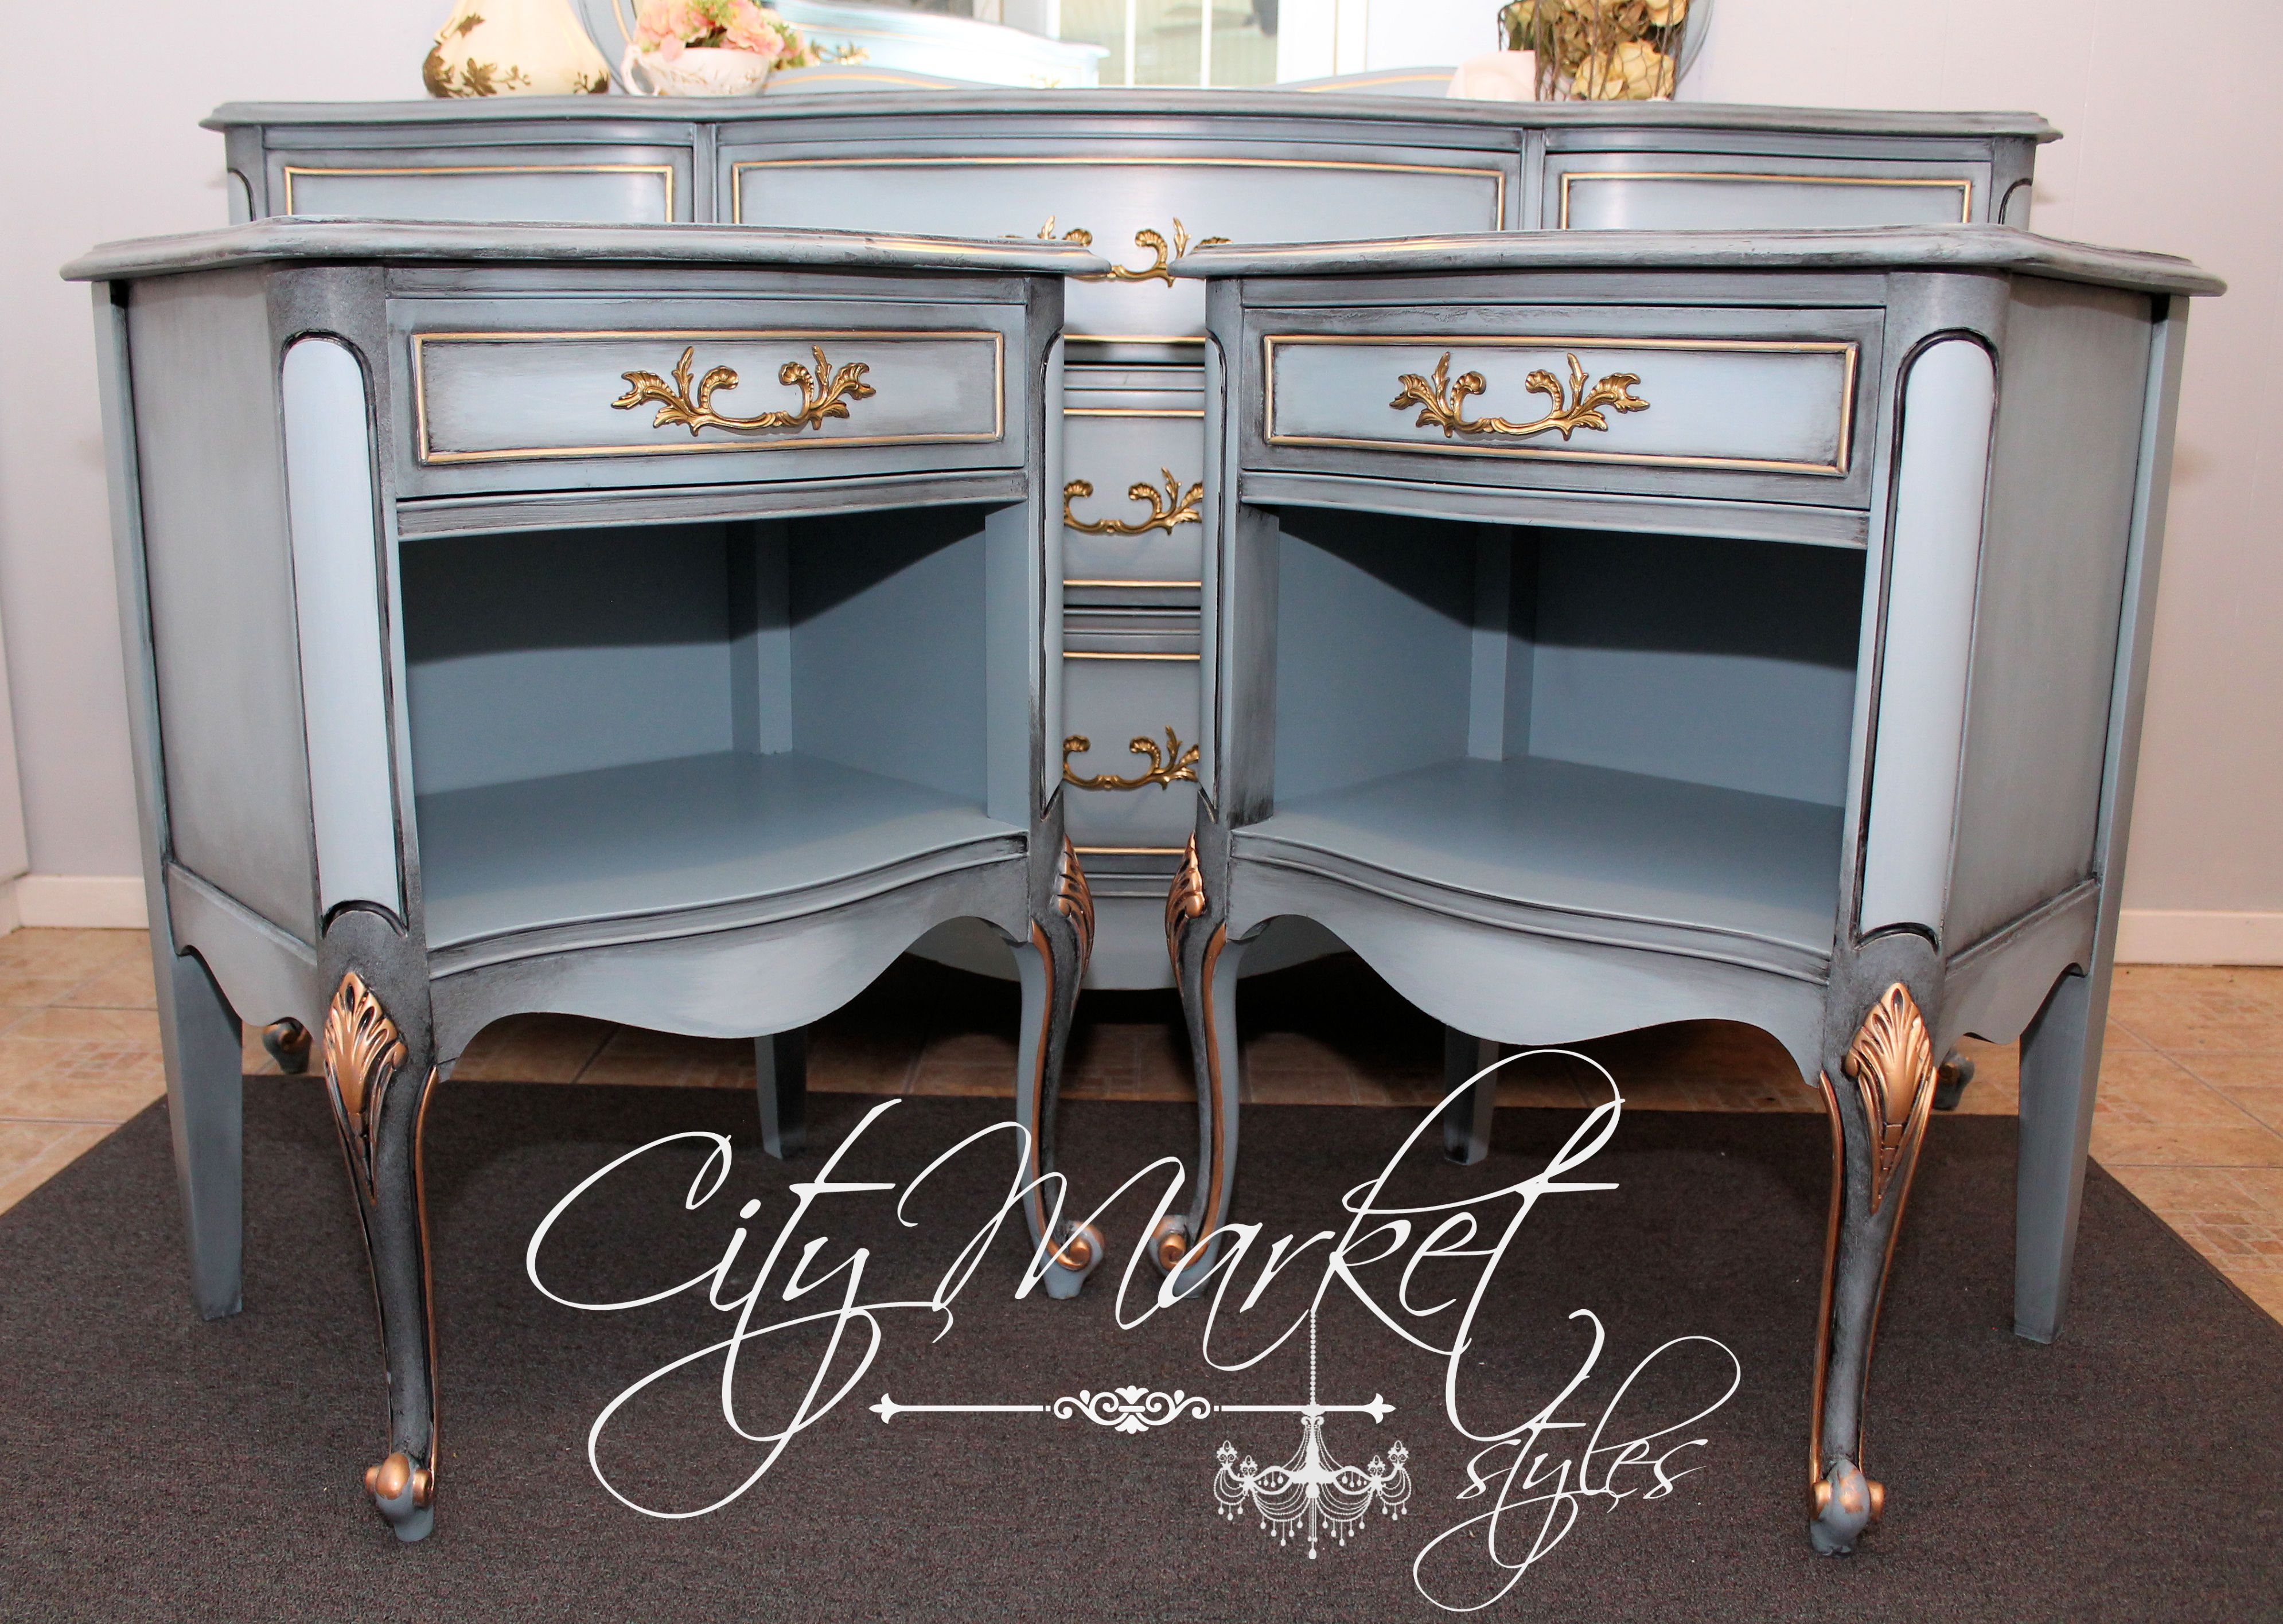 Painted French Provincial End Tables In Stormy Cove With Dark